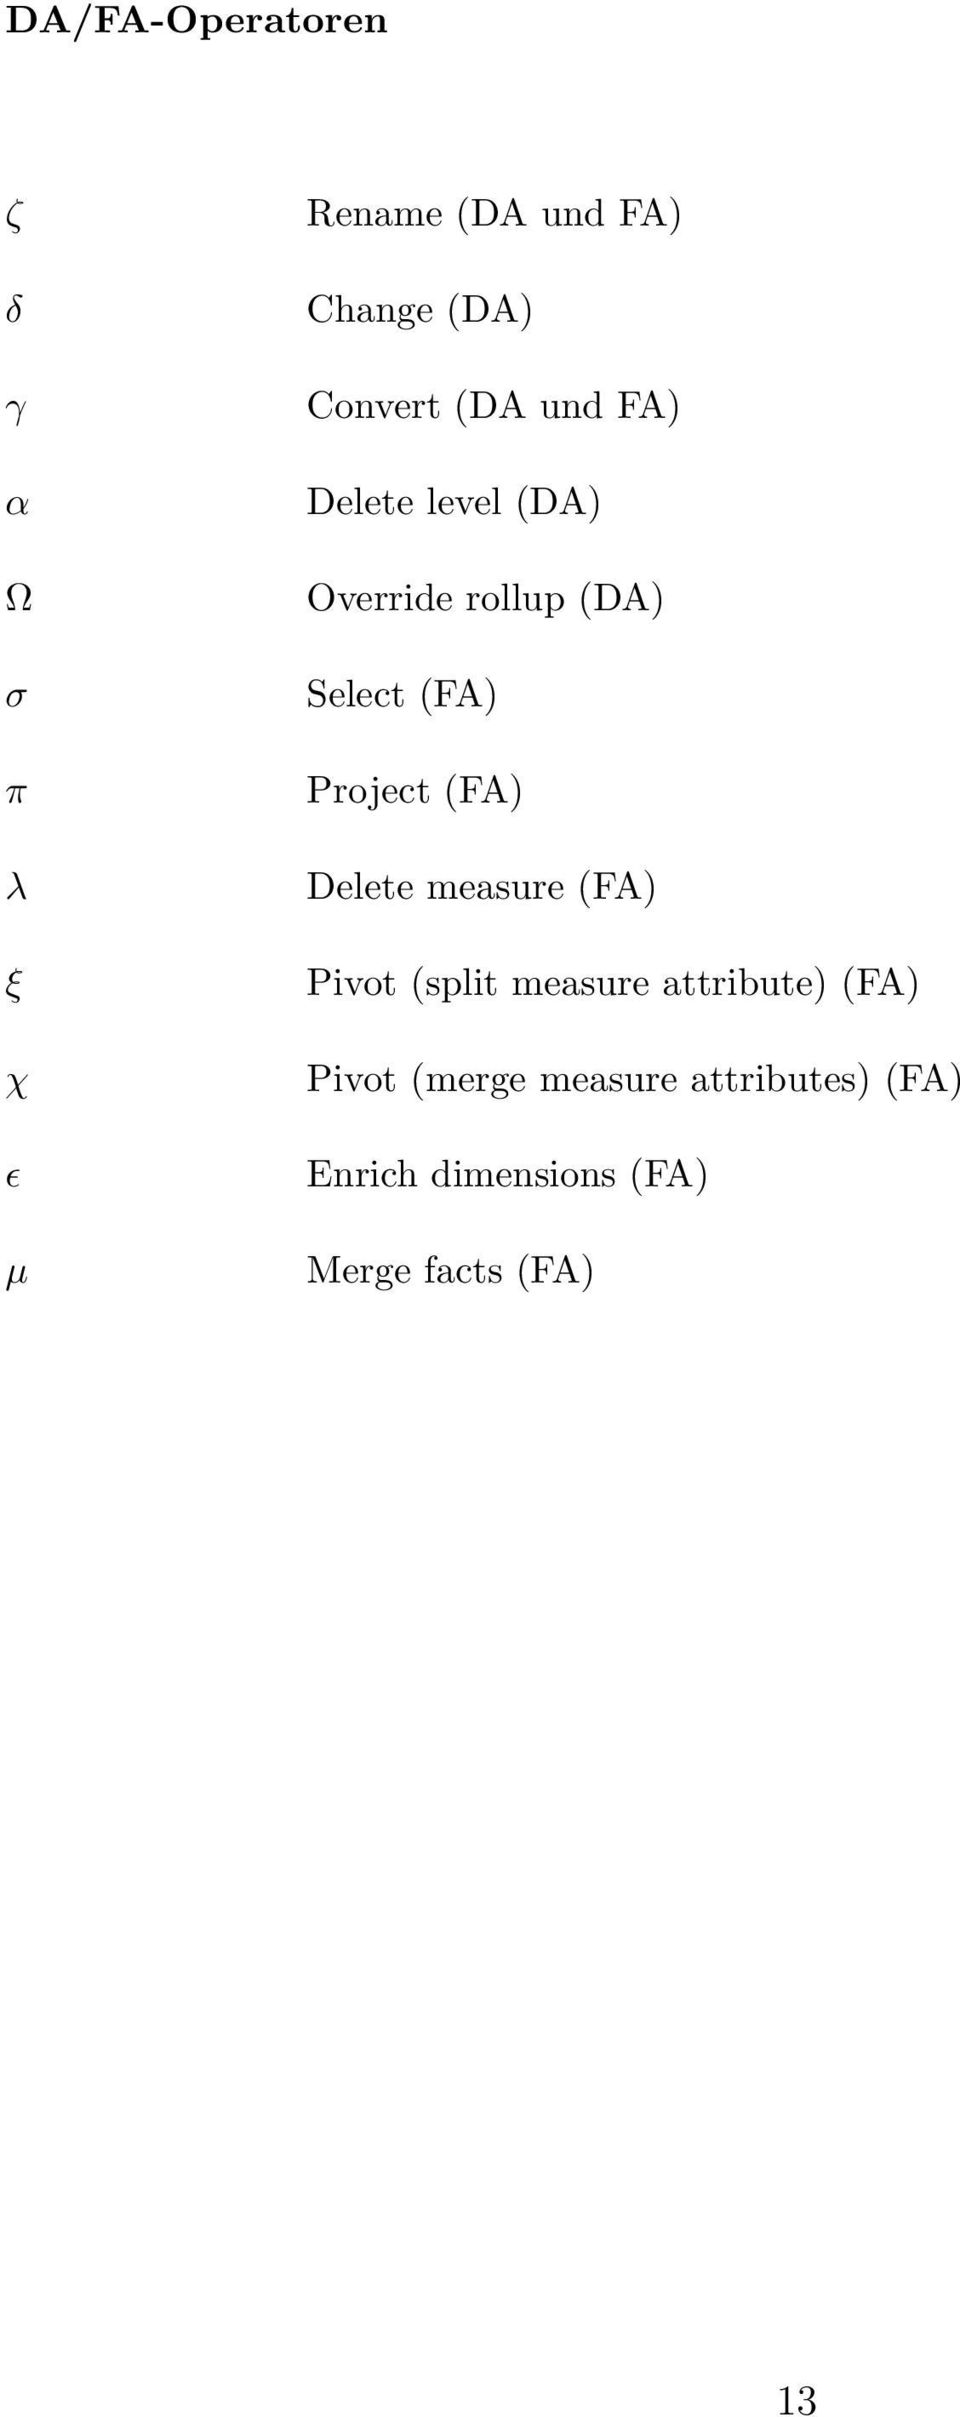 Project (FA) Delete measure (FA) Pivot (split measure attribute) (FA)